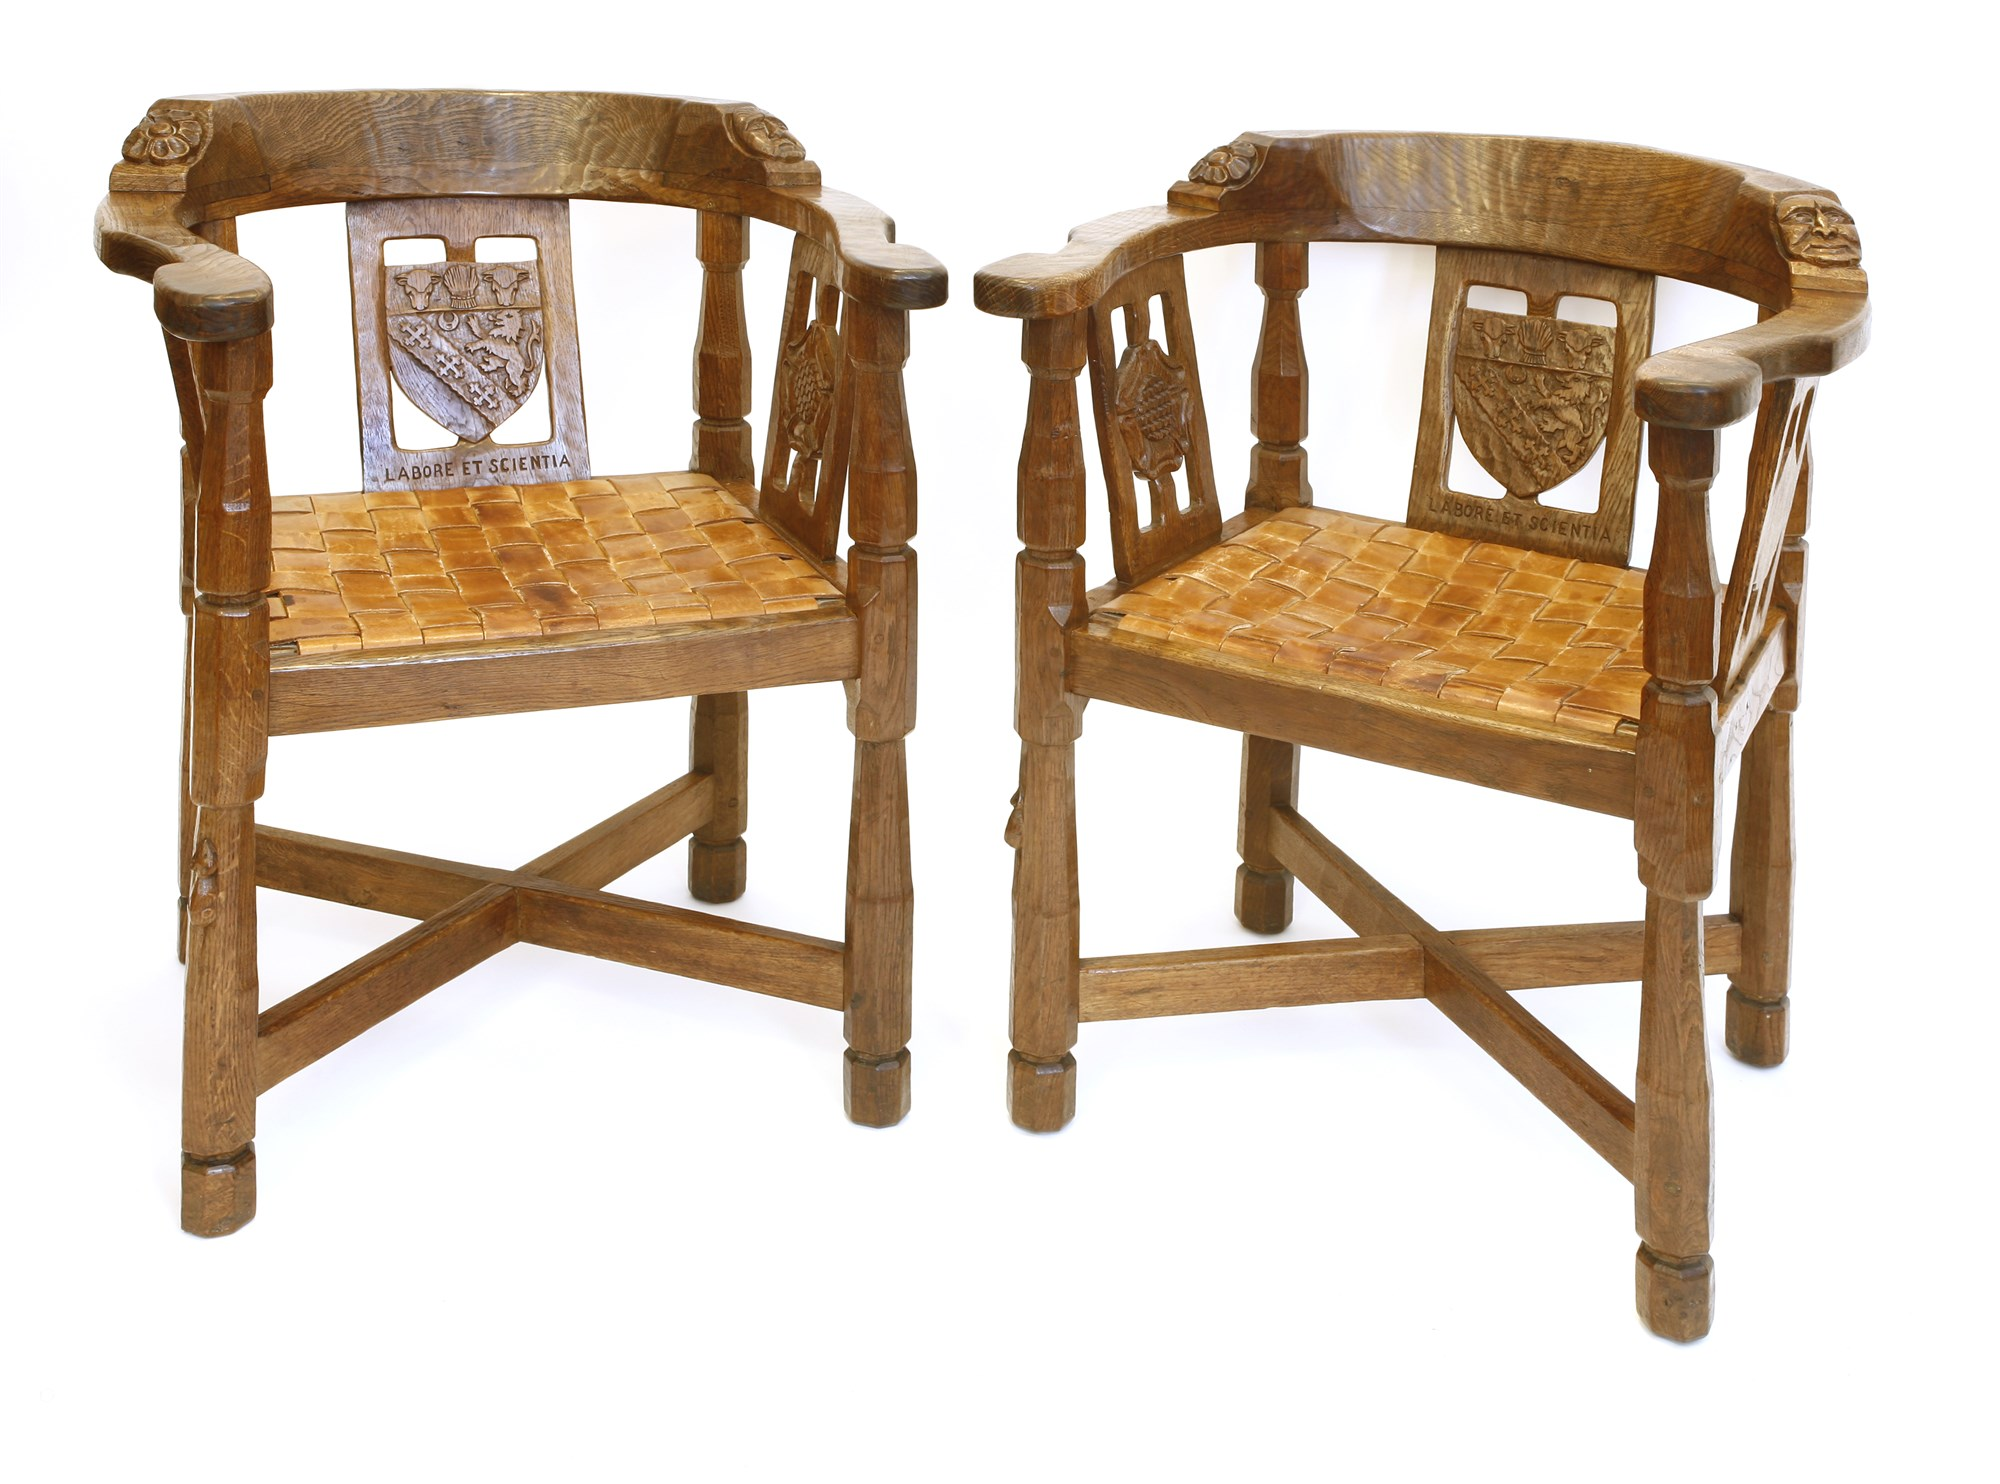 A pair of Mouseman Monk's chairs - sold for £5,658 including premium